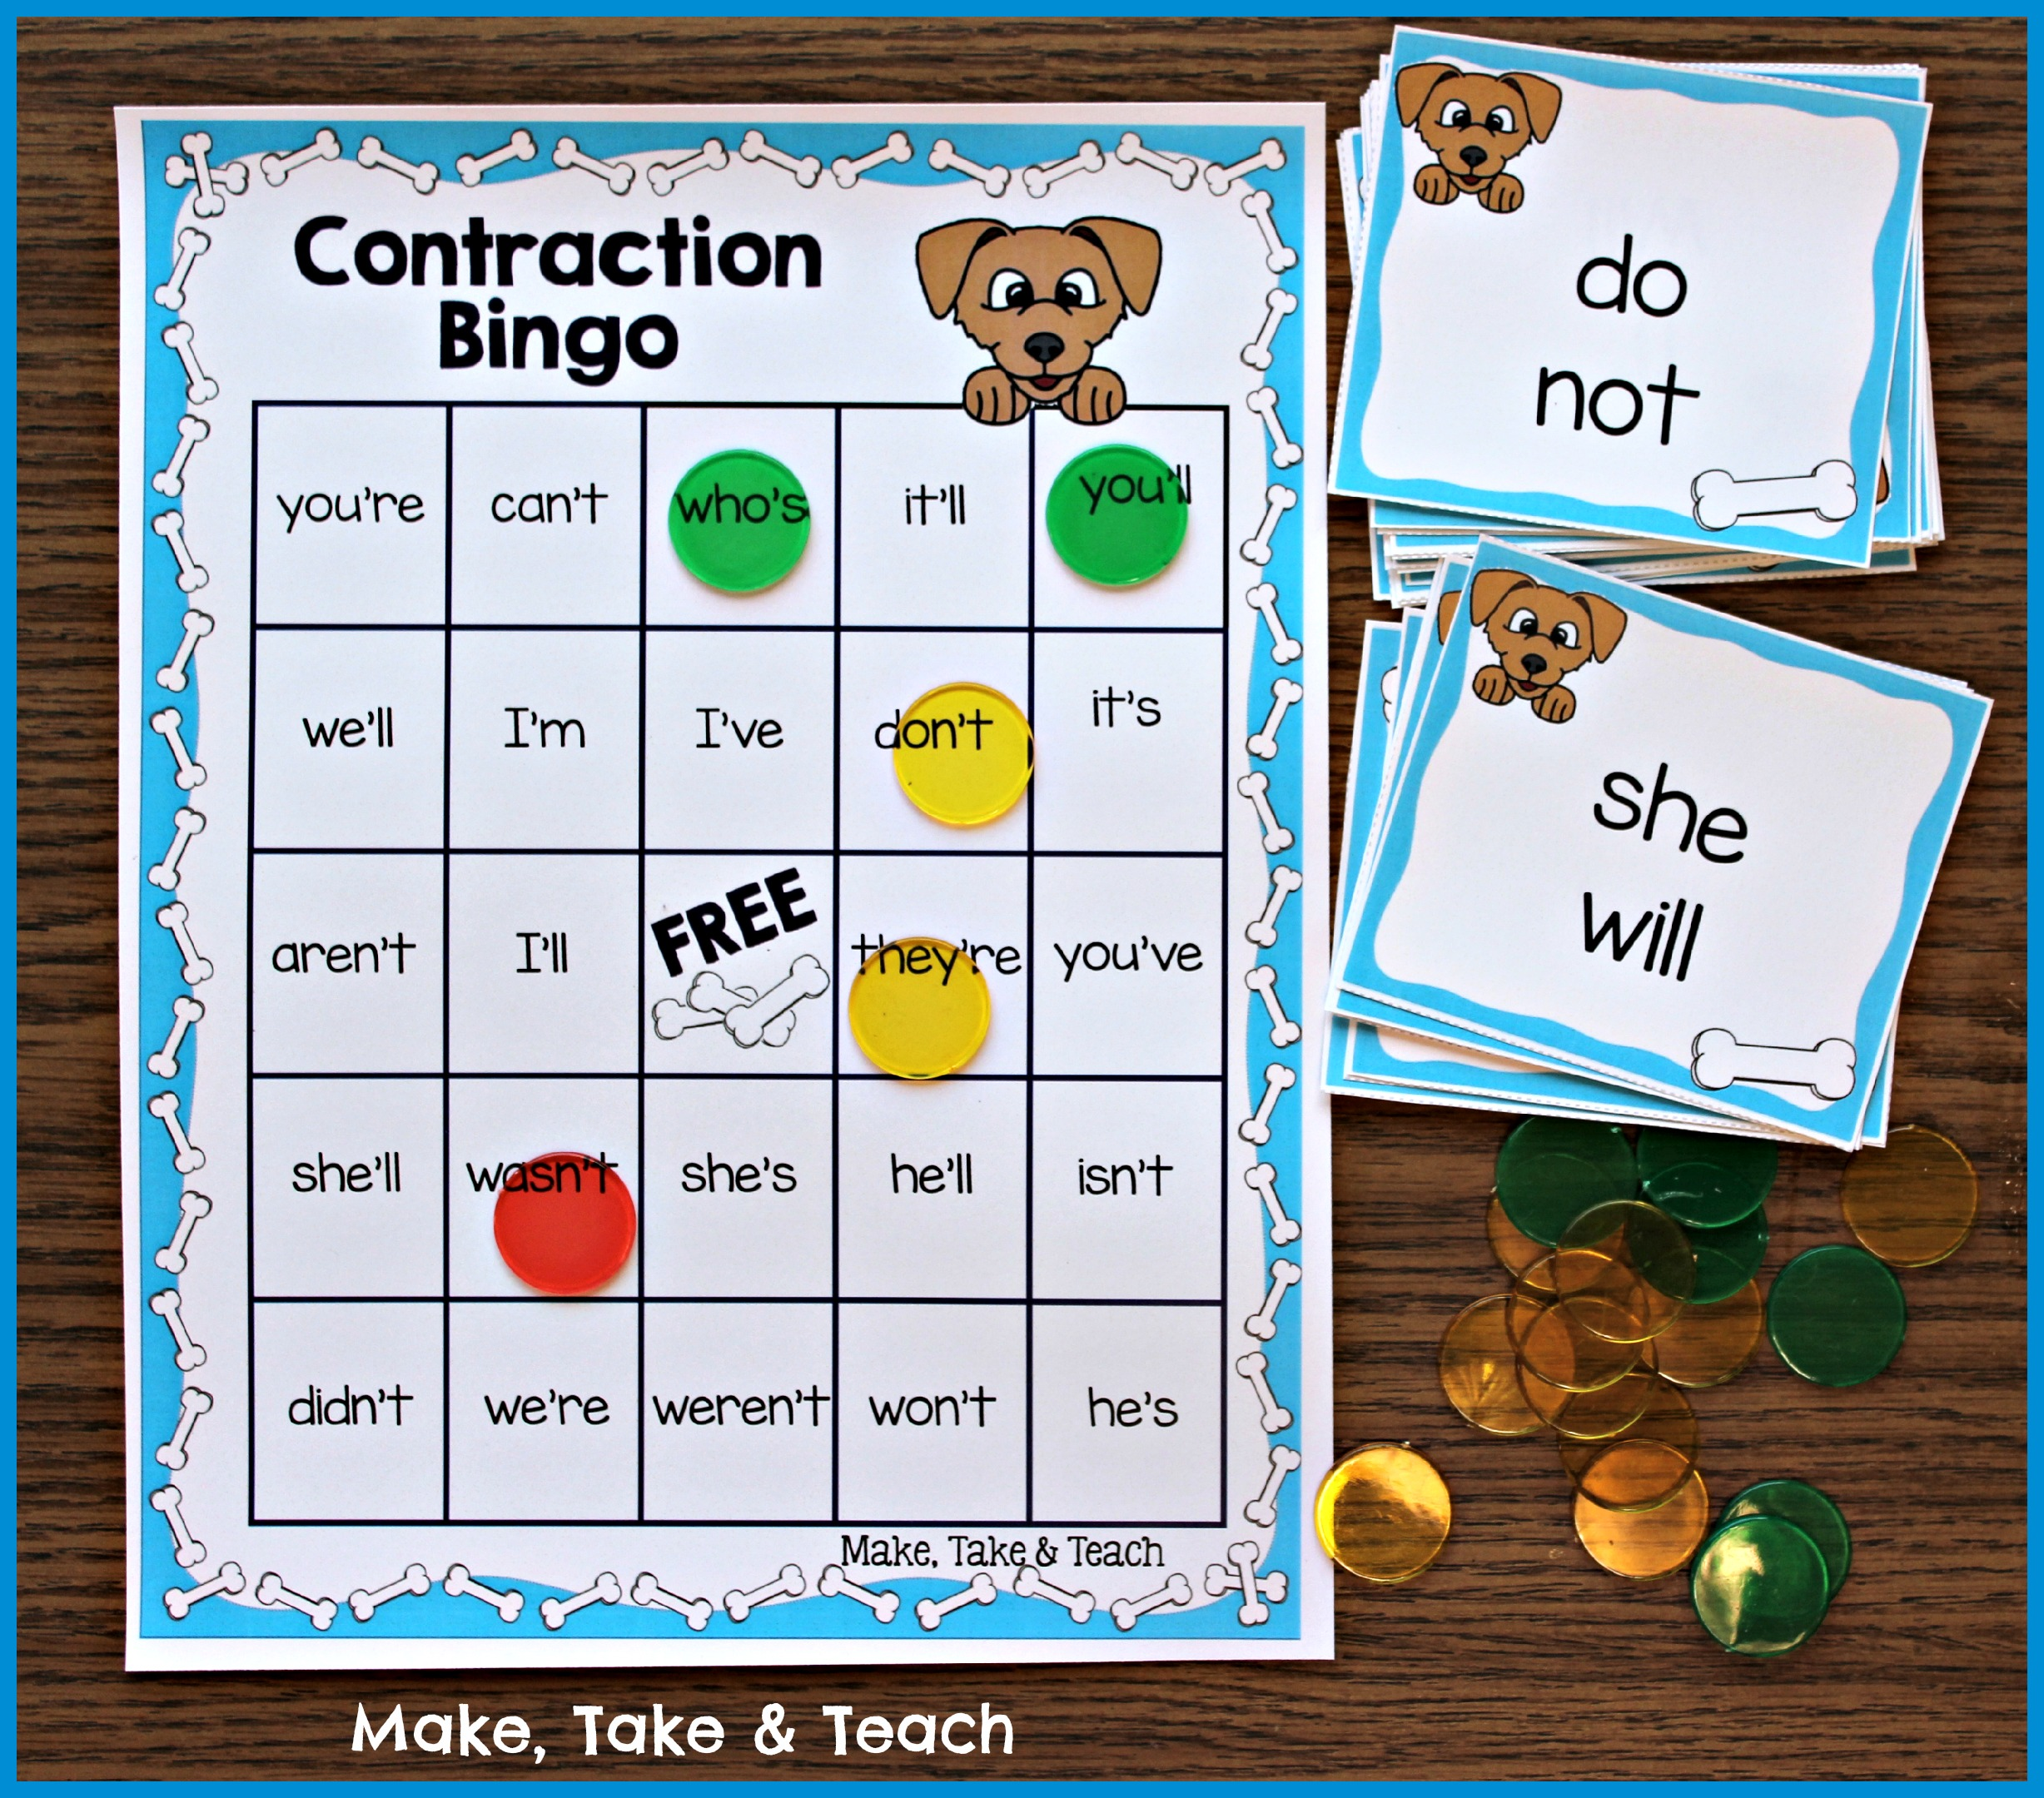 Fun Little Activity for Learning Contractions - Make Take & Teach